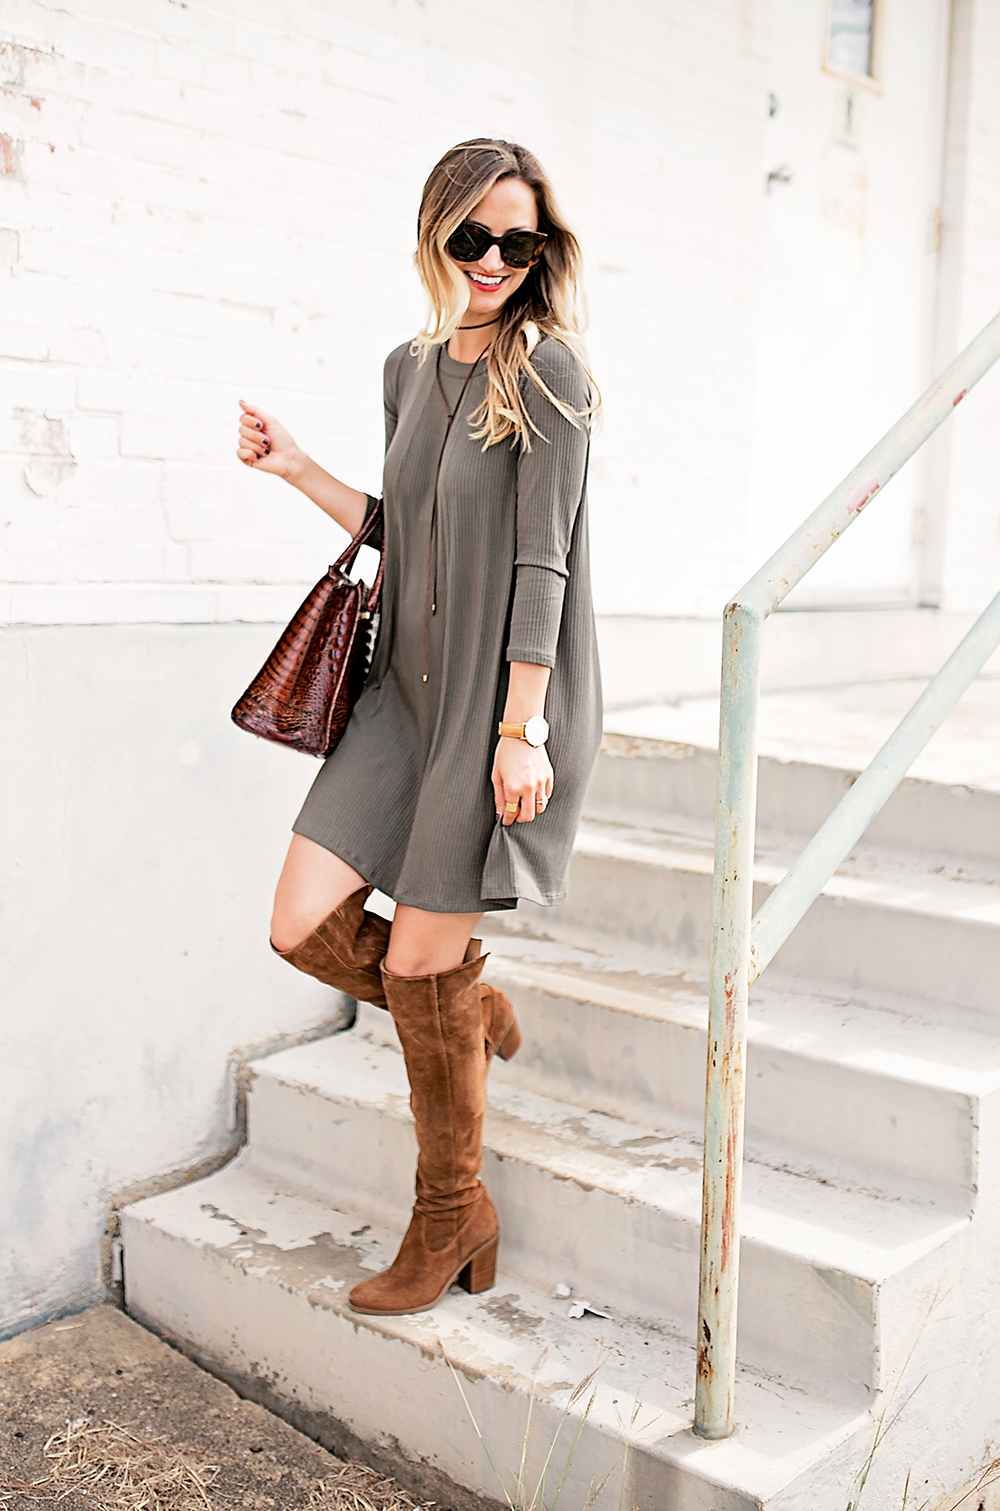 livvyland-blog-olivia-watson-austin-texas-fashion-blogger-fall-outfit-over-the-knee-otk-boots-brahmin-duxbury-handbag-olive-green-shift-dress-celine-marta-mini-sunglasses-9